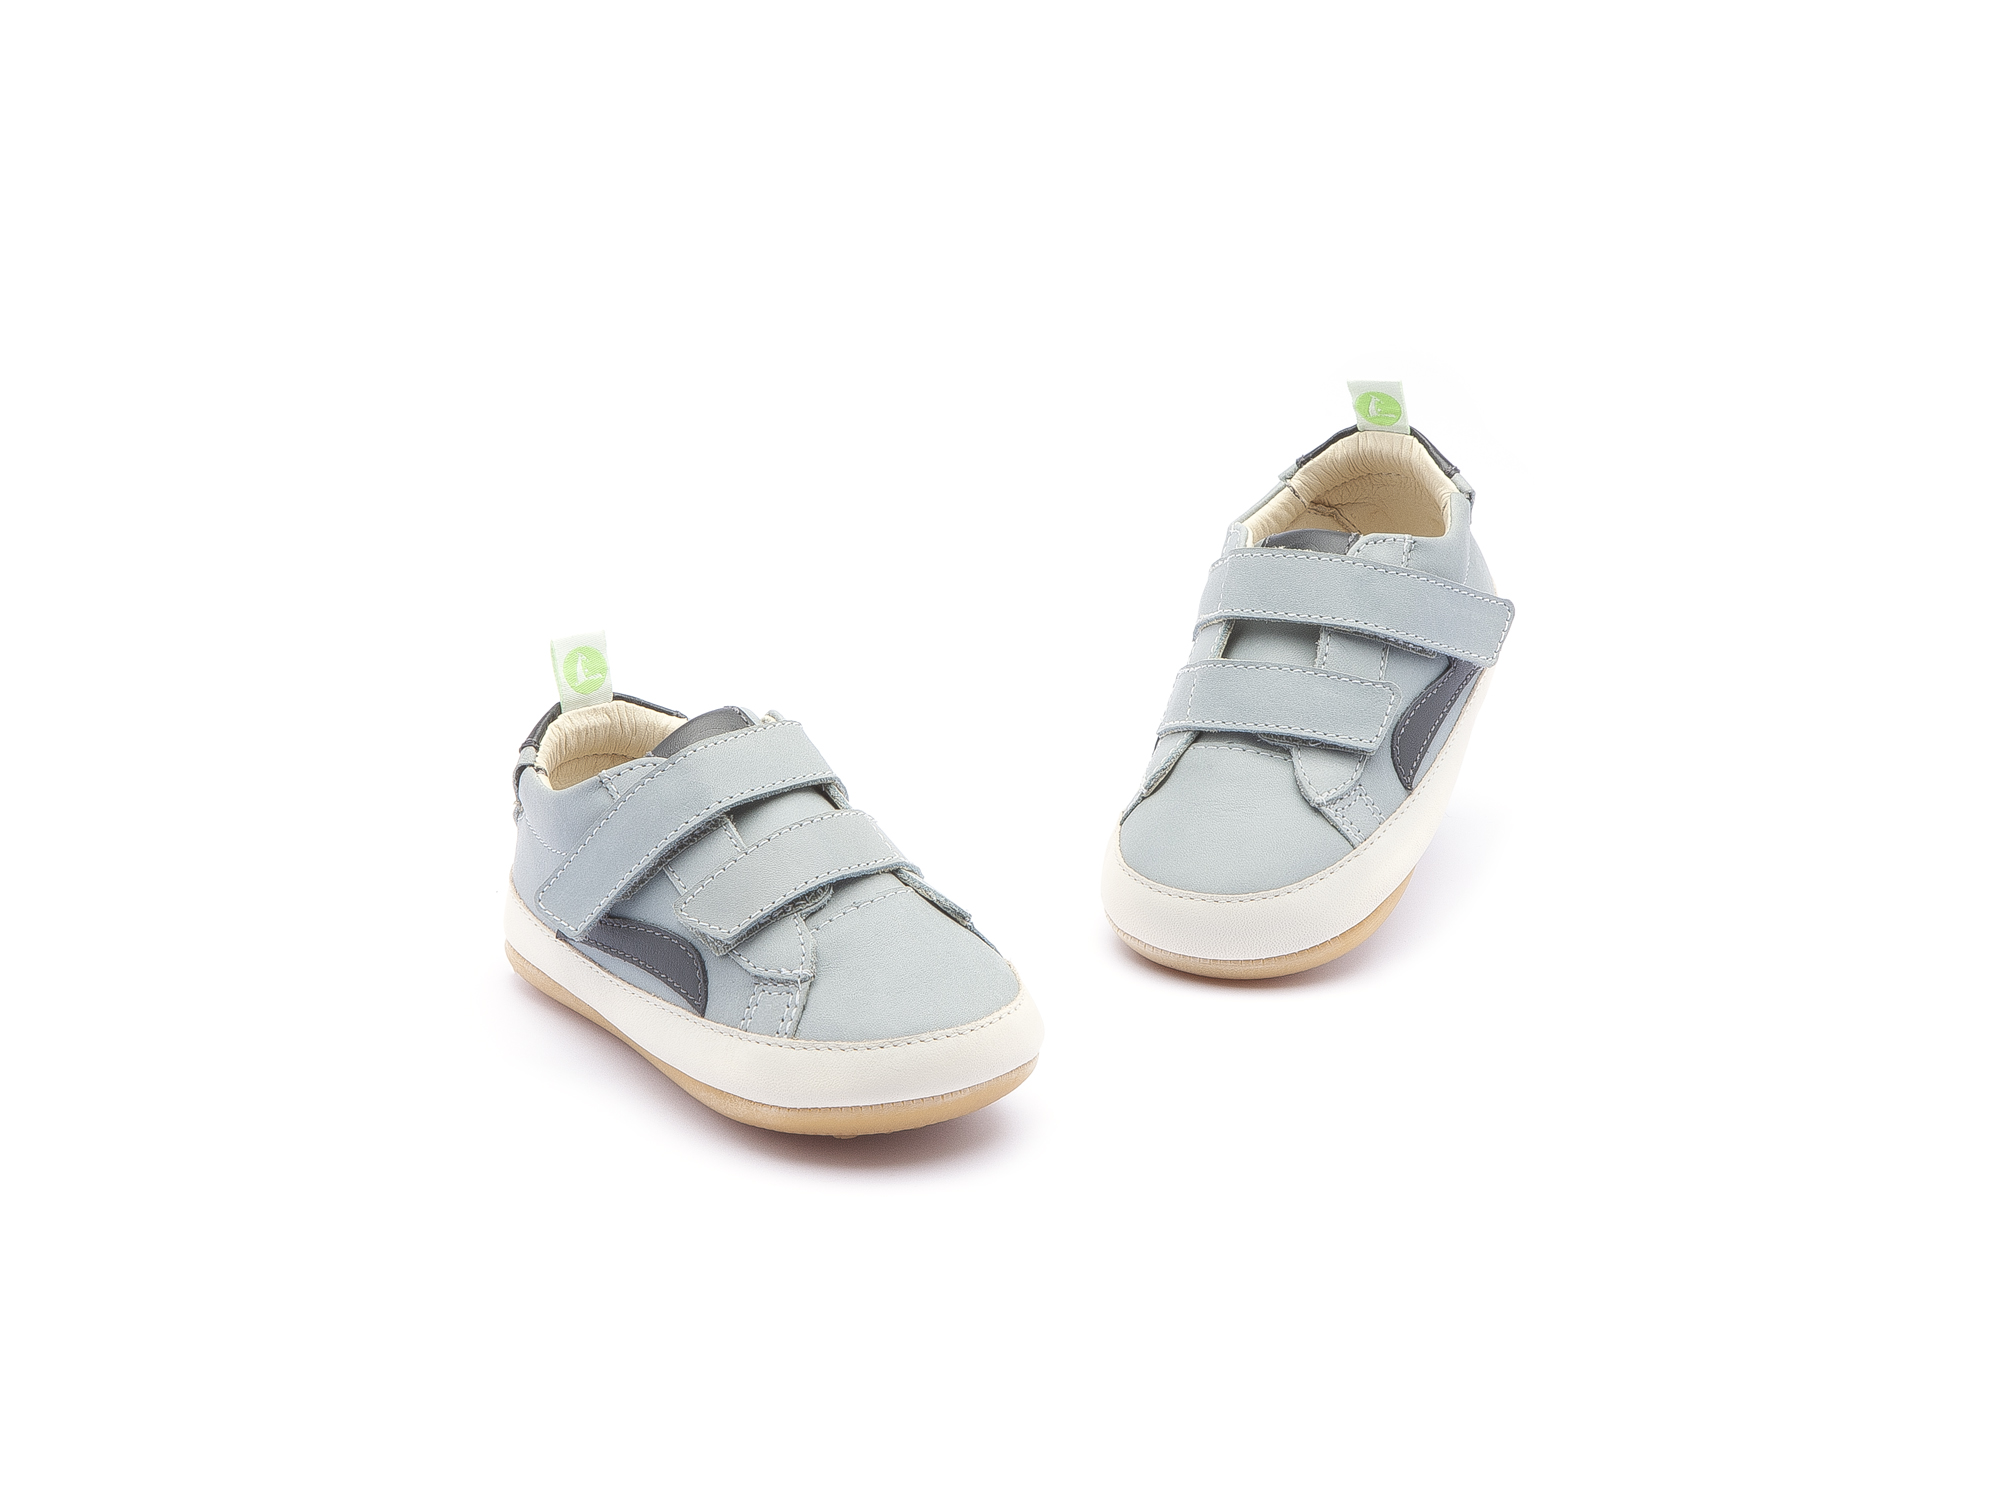 Sneaker Casual Darty Slate Blue/ Ash Baby 0 à 2 anos - 3